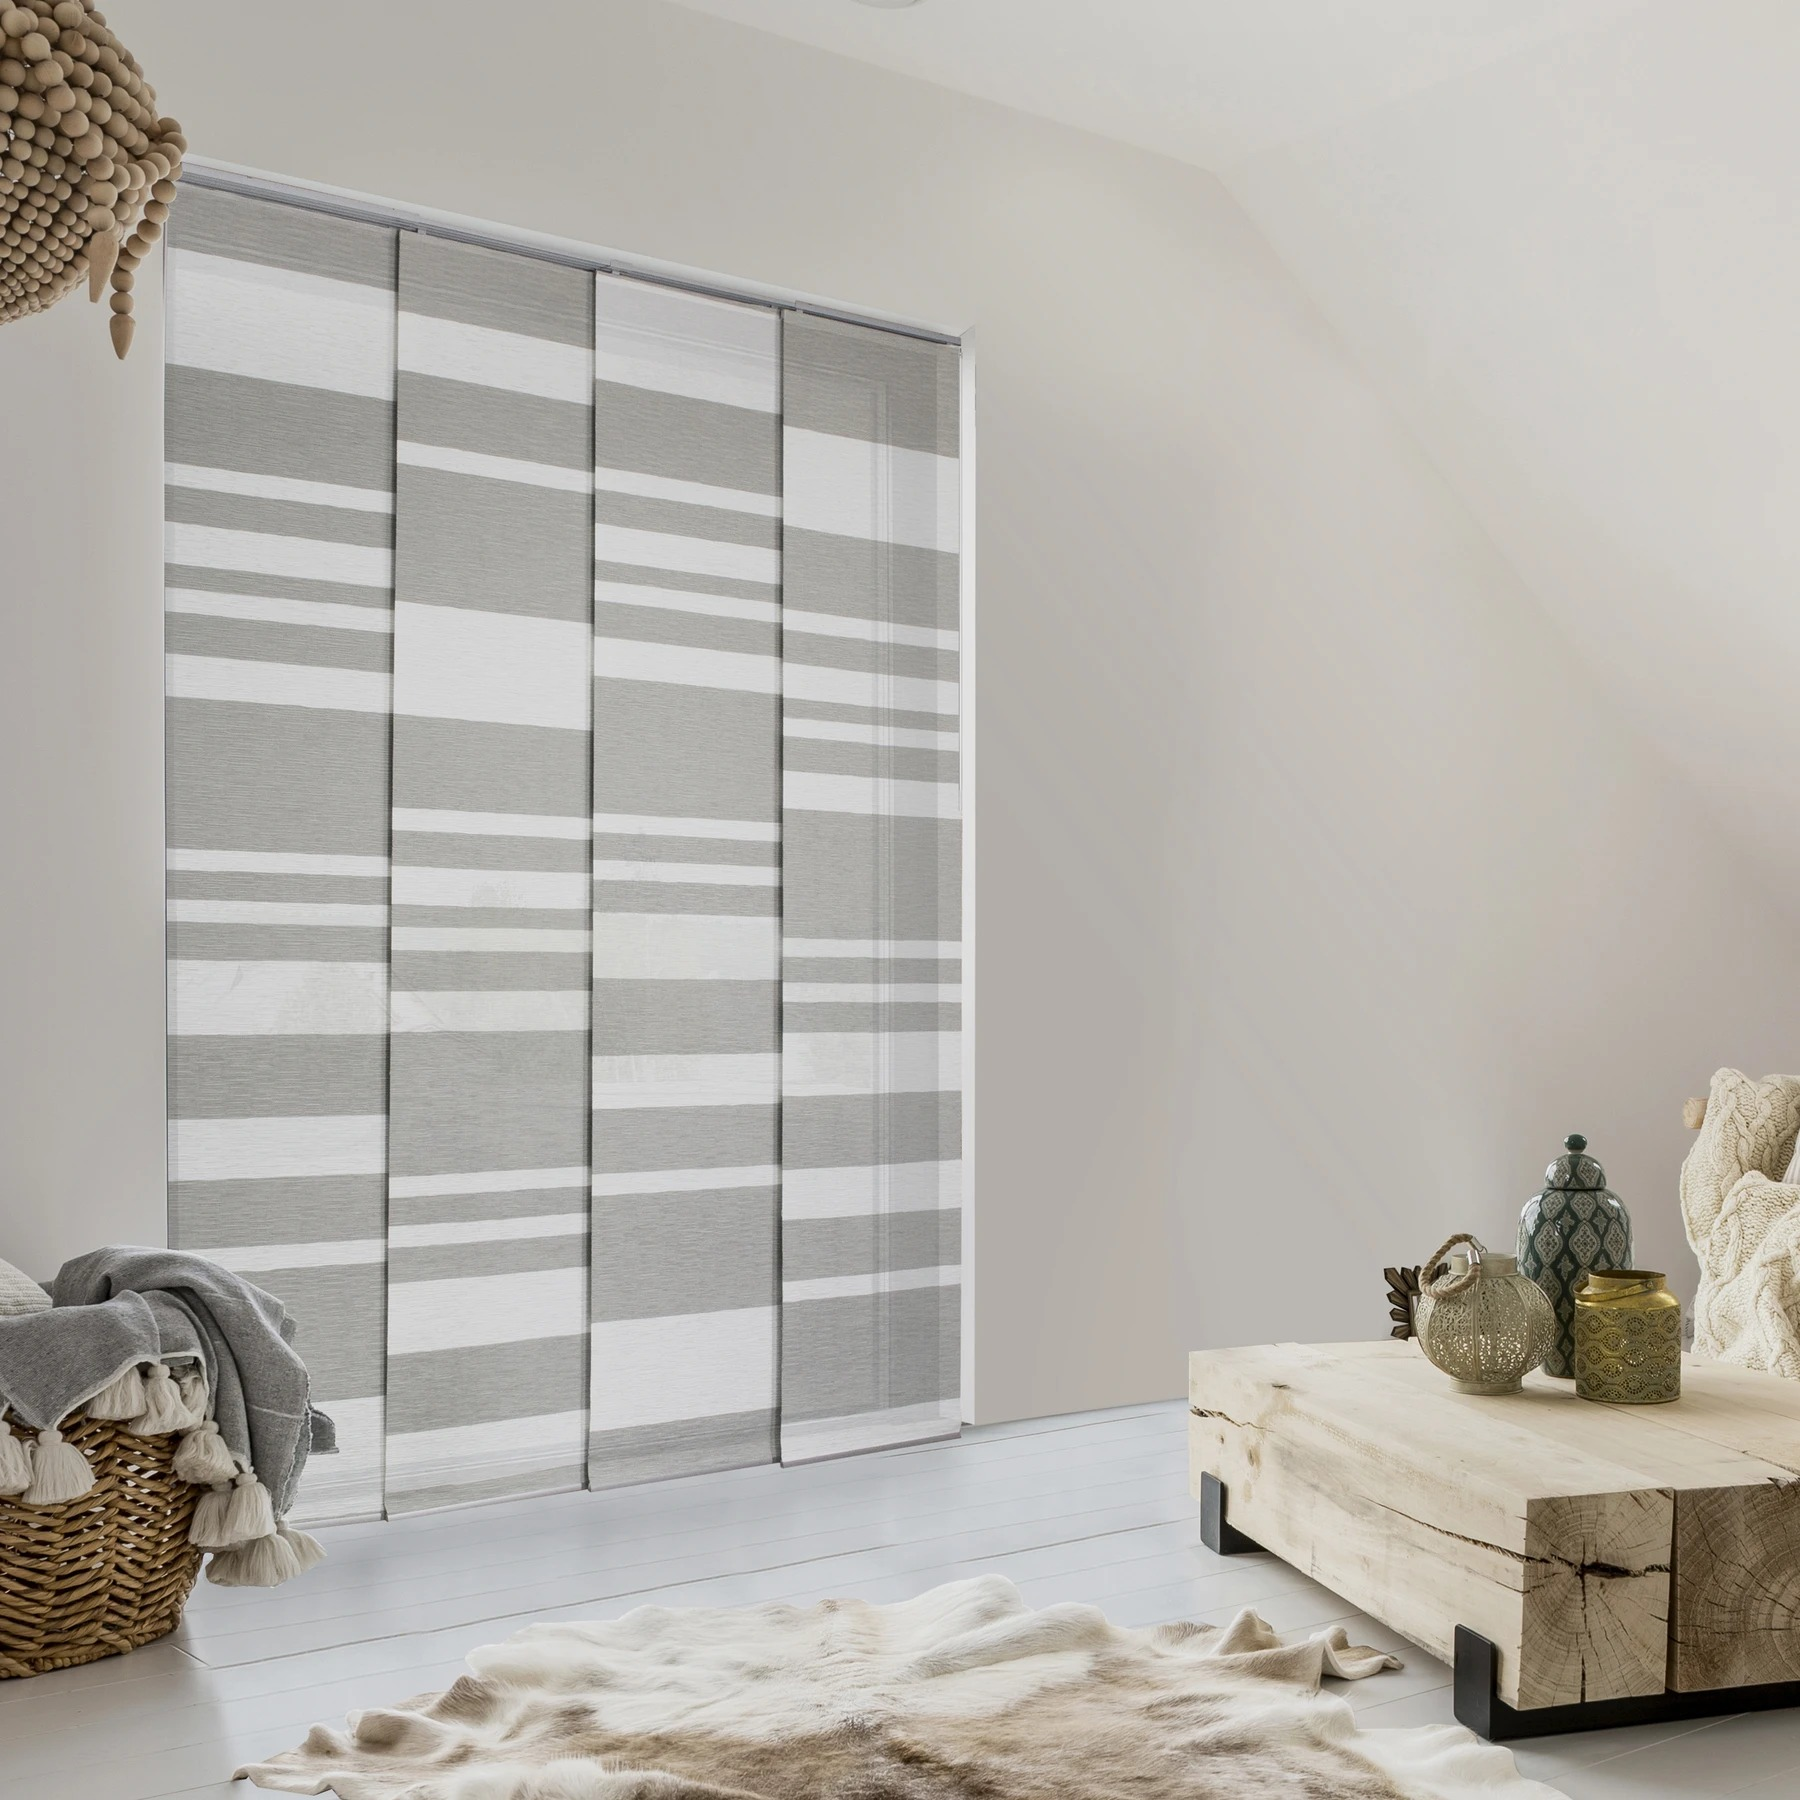 Light Filtering | Pale Gray